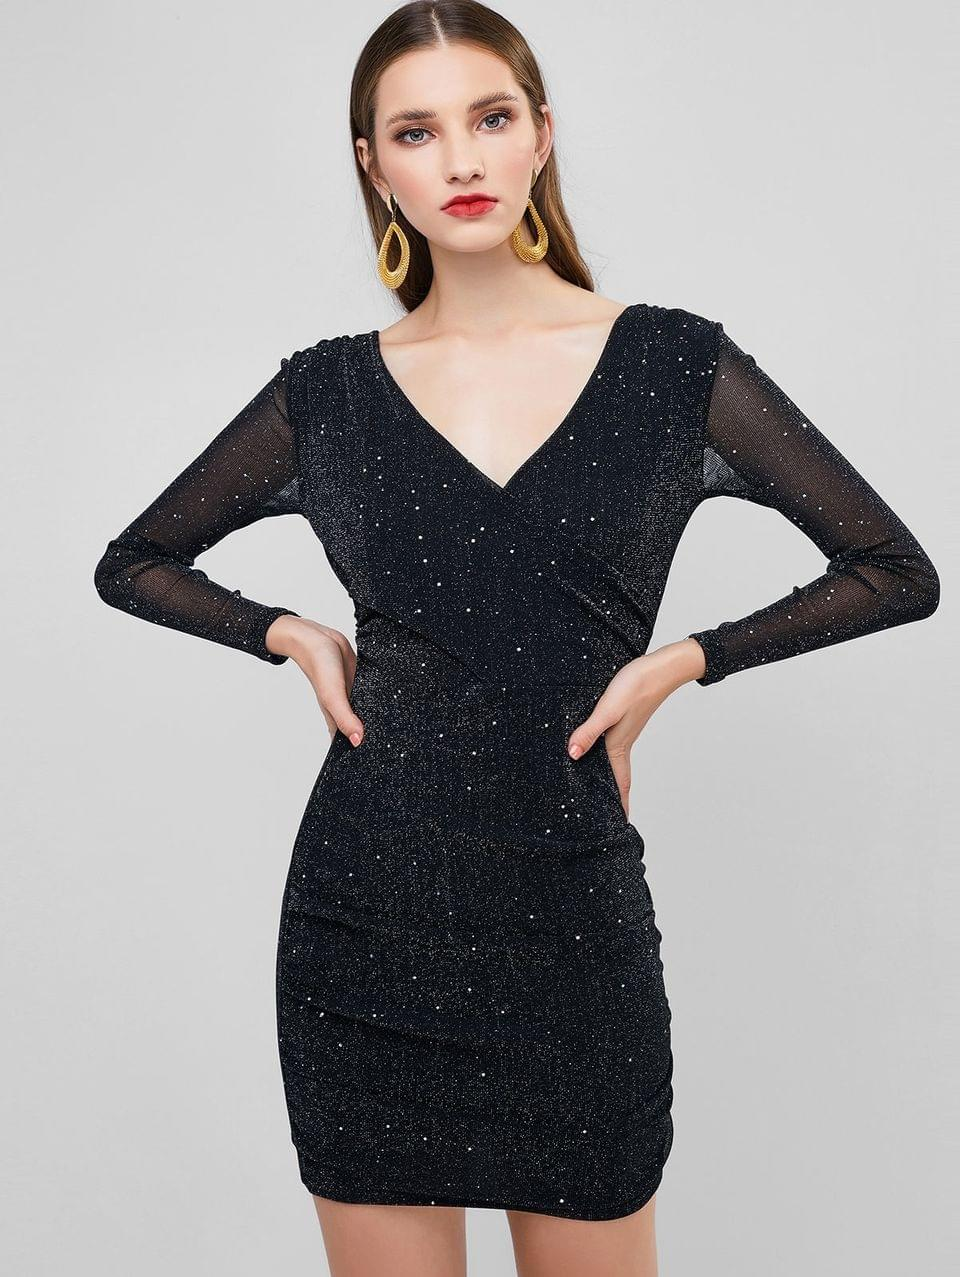 Women's Glitter Plunging Ruched Bodycon Party Dress - Black M